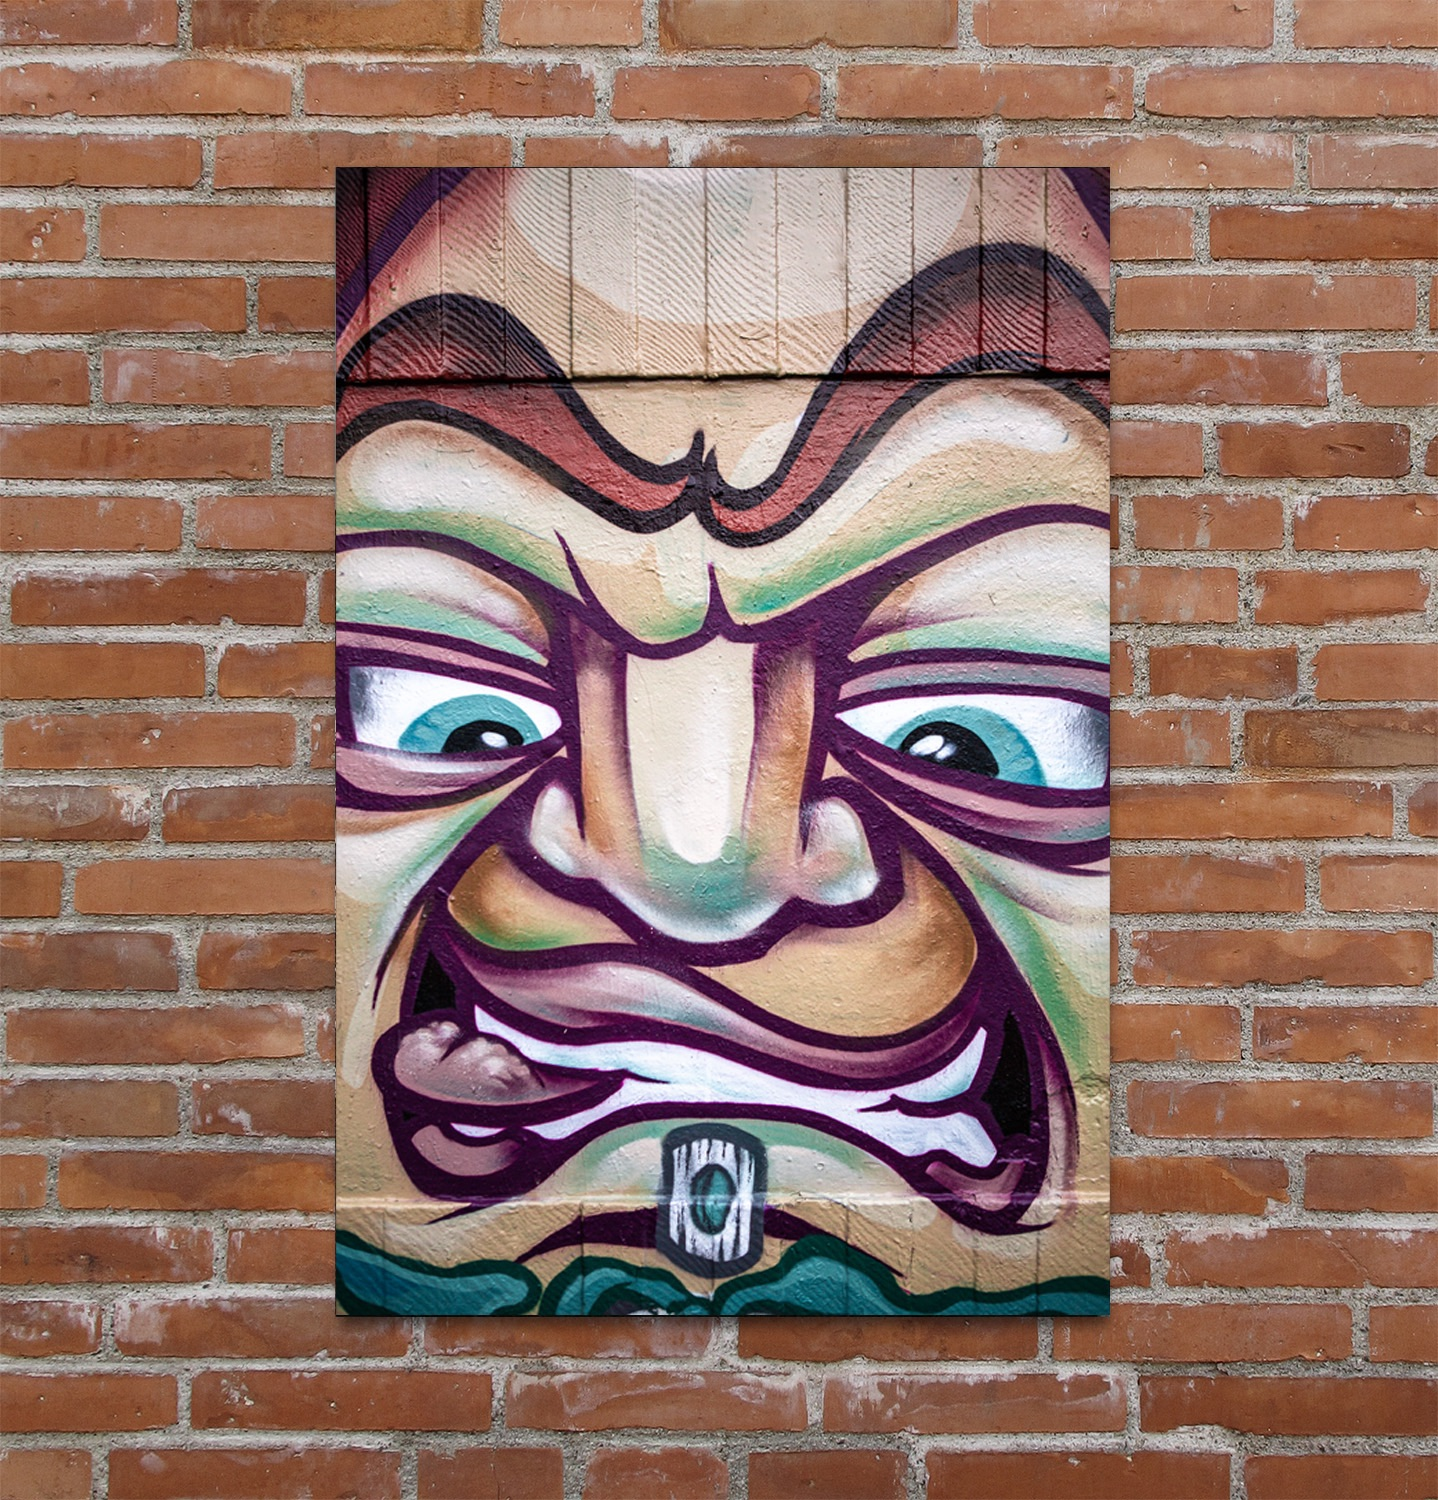 Snarling caricature graffiti art in Manchester.